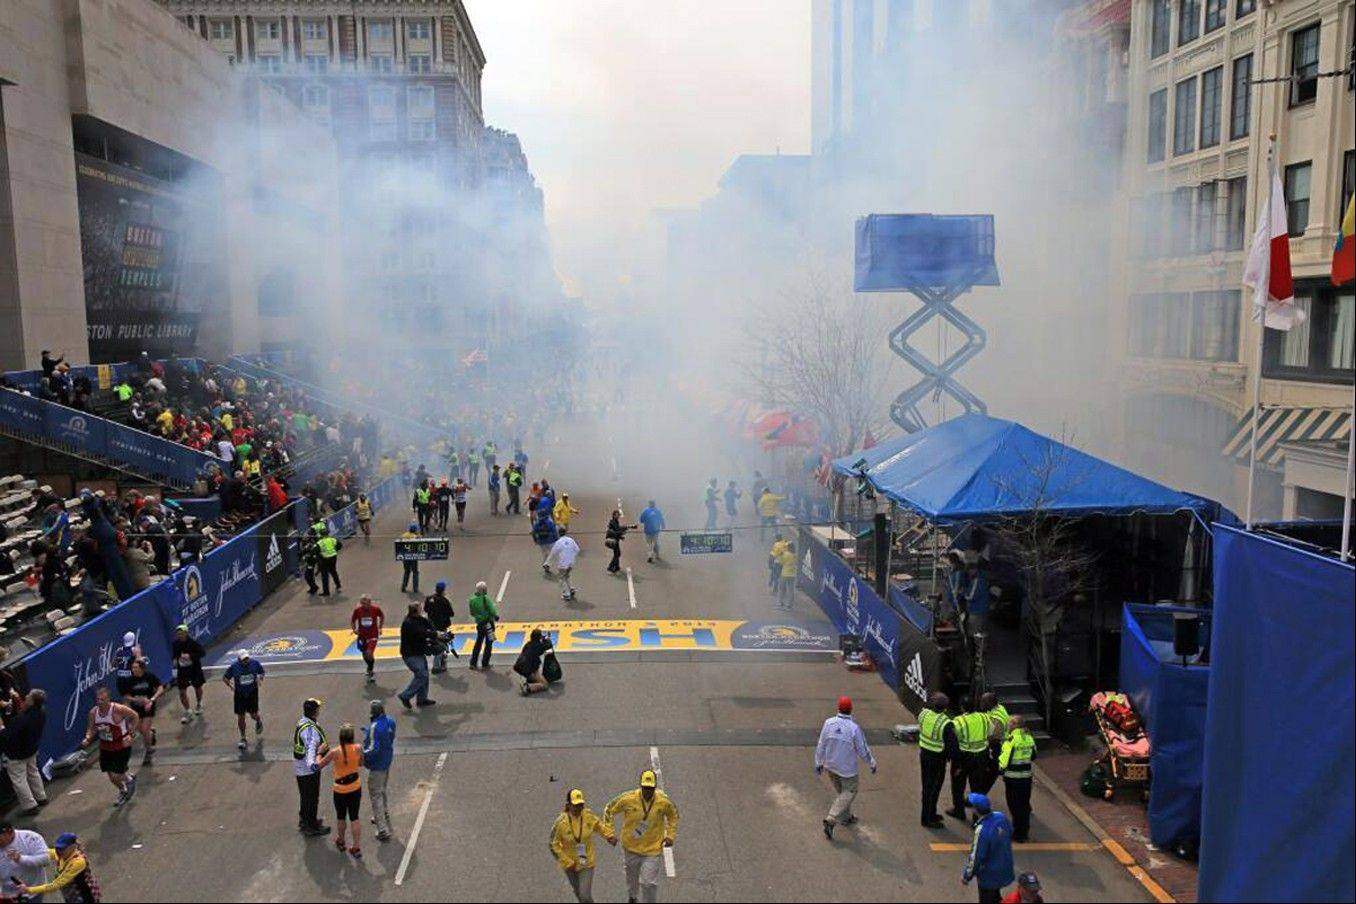 Medical workers aid injured people at the 2013 Boston Marathon following an explosion in Boston, Monday, April 15, 2013. Two explosions shattered the euphoria of the Boston Marathon finish line on Monday, sending authorities out on the course to carry off the injured while the stragglers were rerouted away from the smoking site of the blasts.